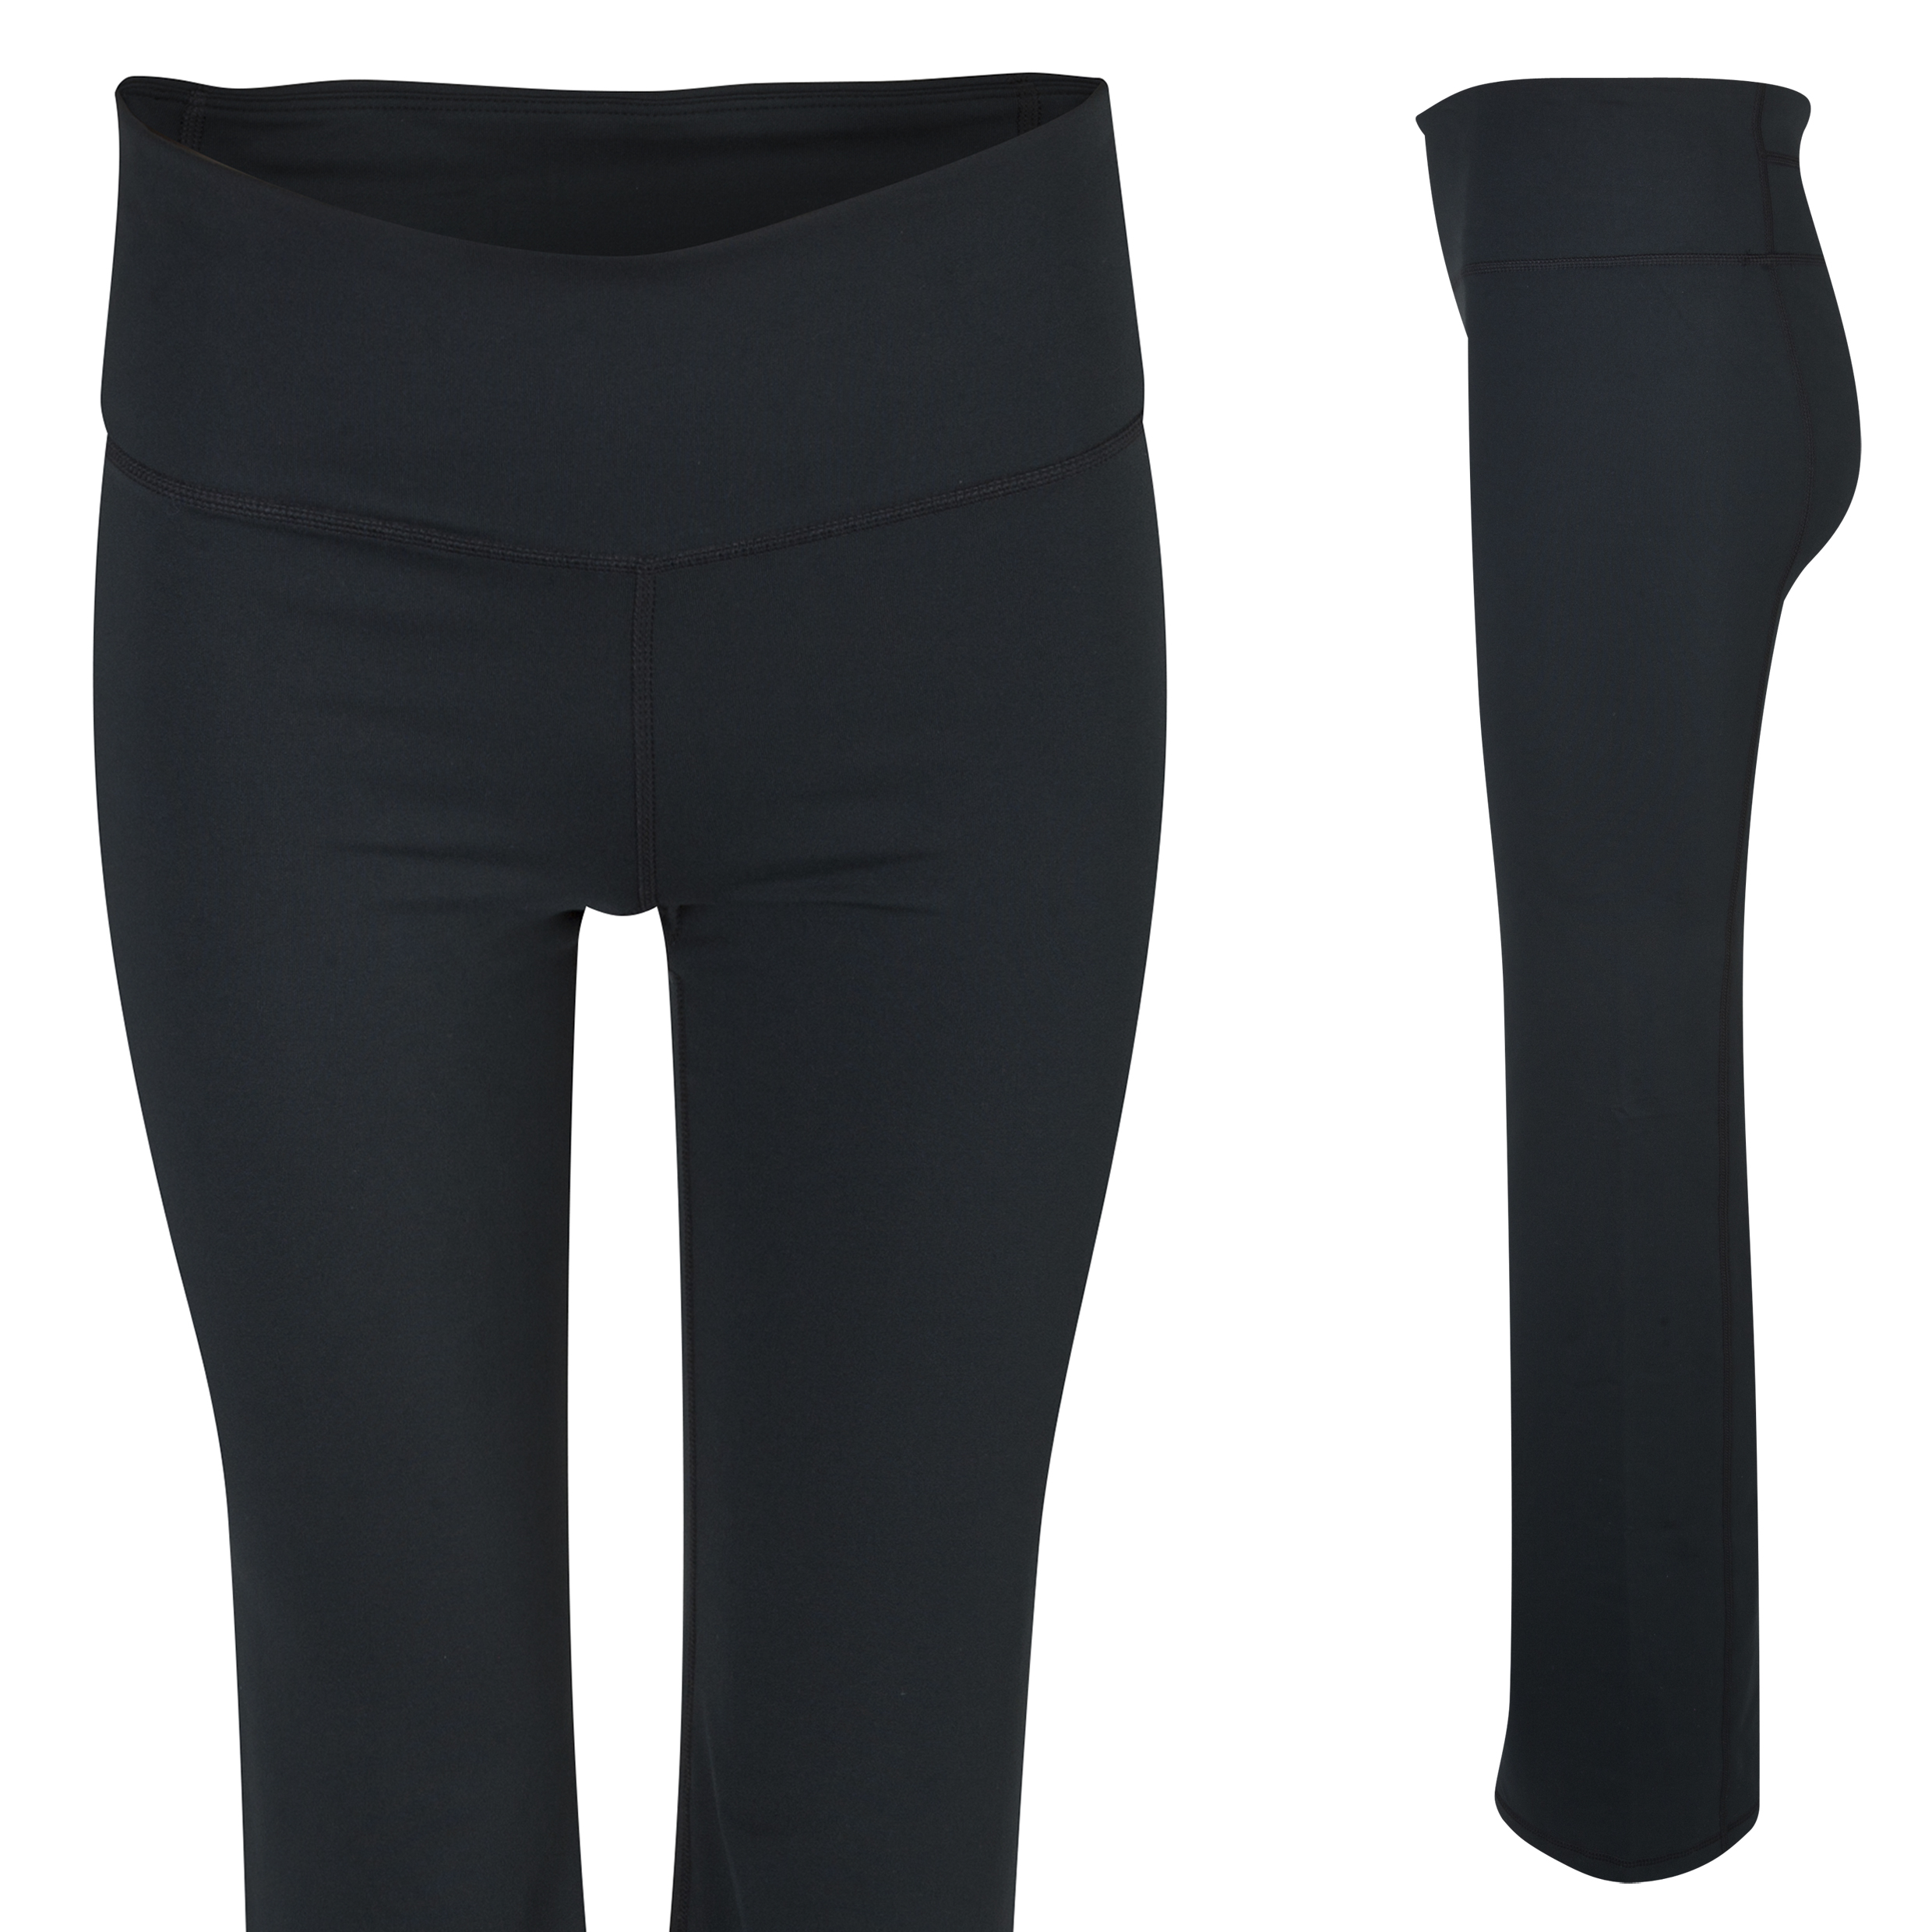 Lifestyle Under Armour Perfect Pant Black Womens Black